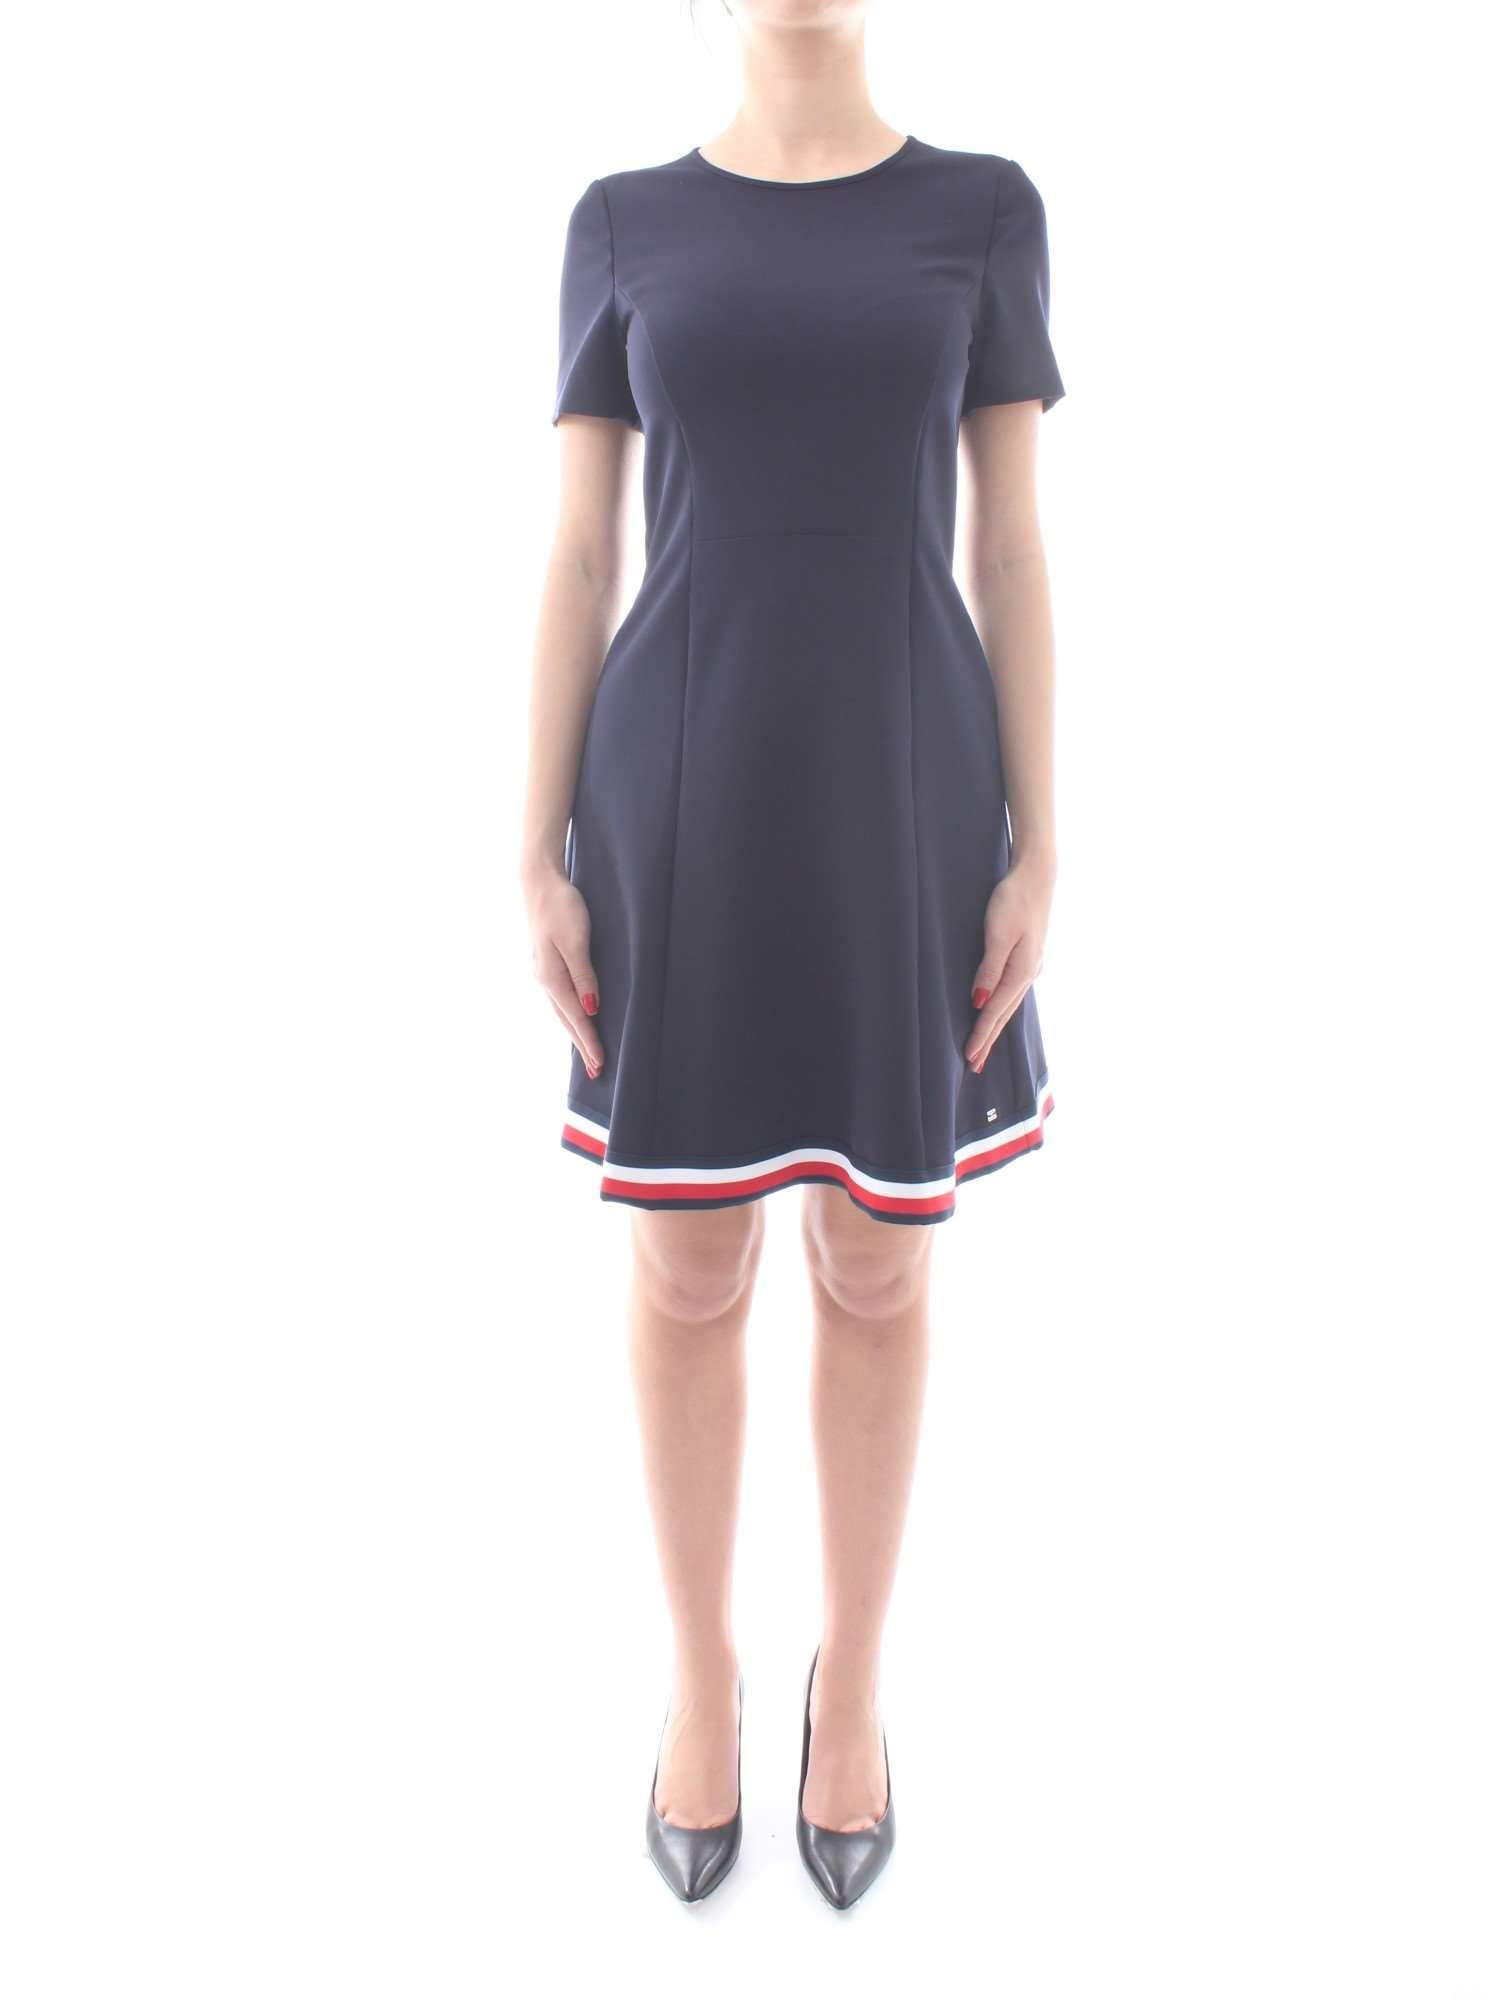 Tommy Hilfiger Angela Global STP Dress SS Slv Vestido para Mujer